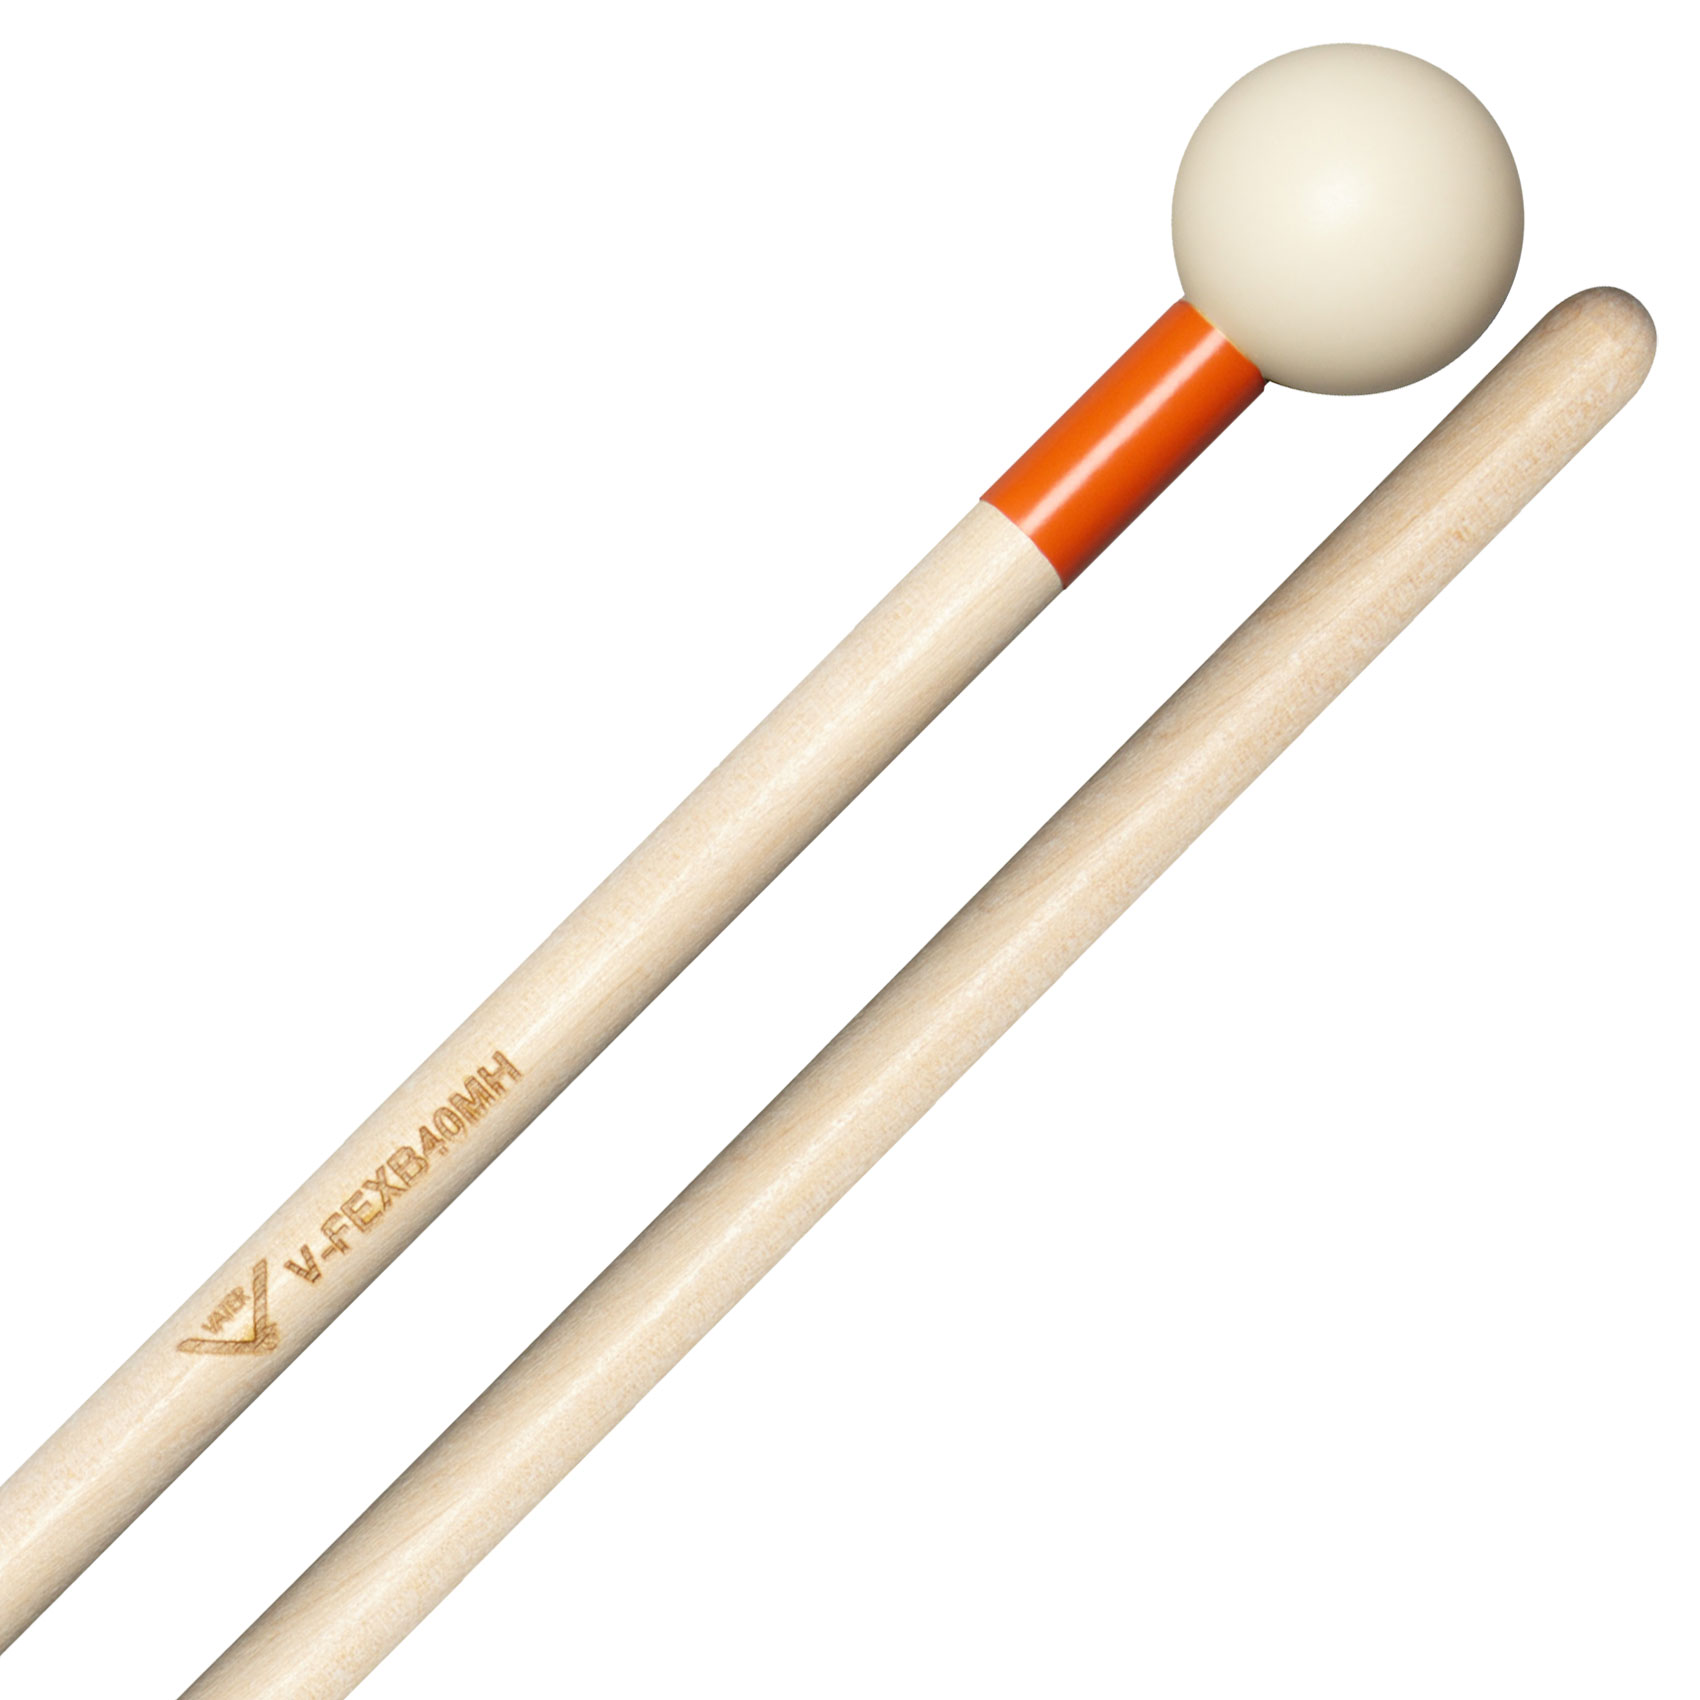 Vater Front Ensemble Medium Hard Xylophone/Bell Mallets